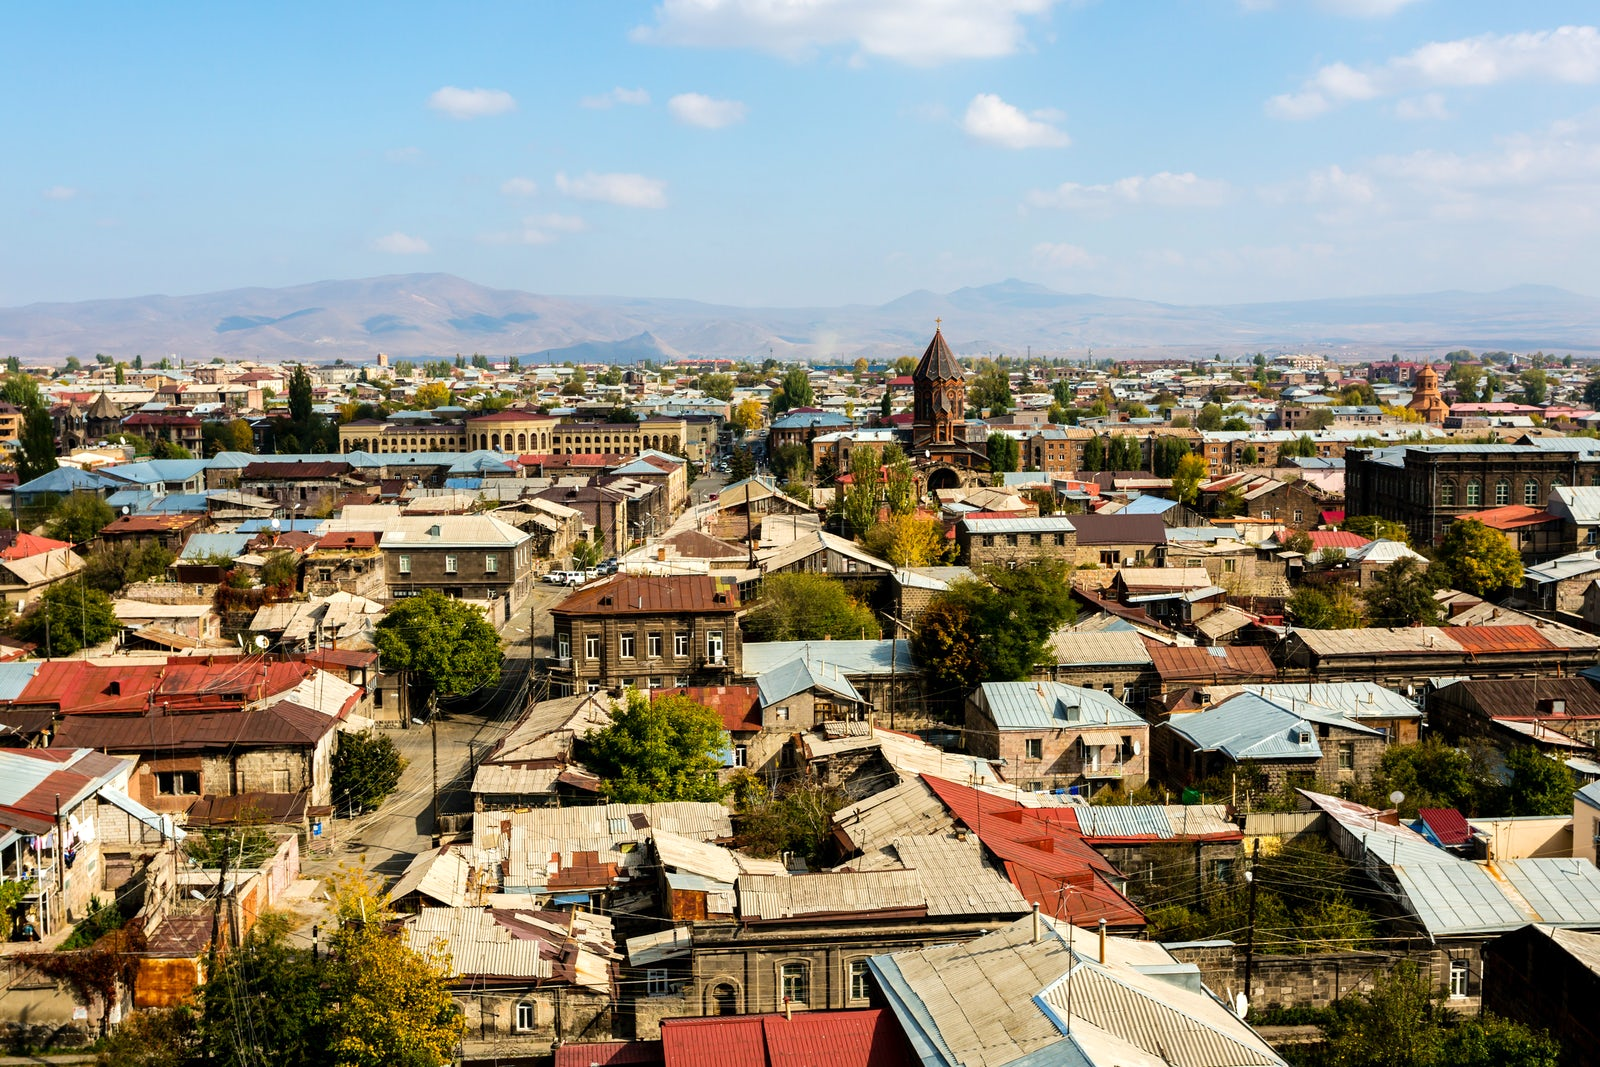 !i18n:fr:data.cities:gyumri.picture.caption